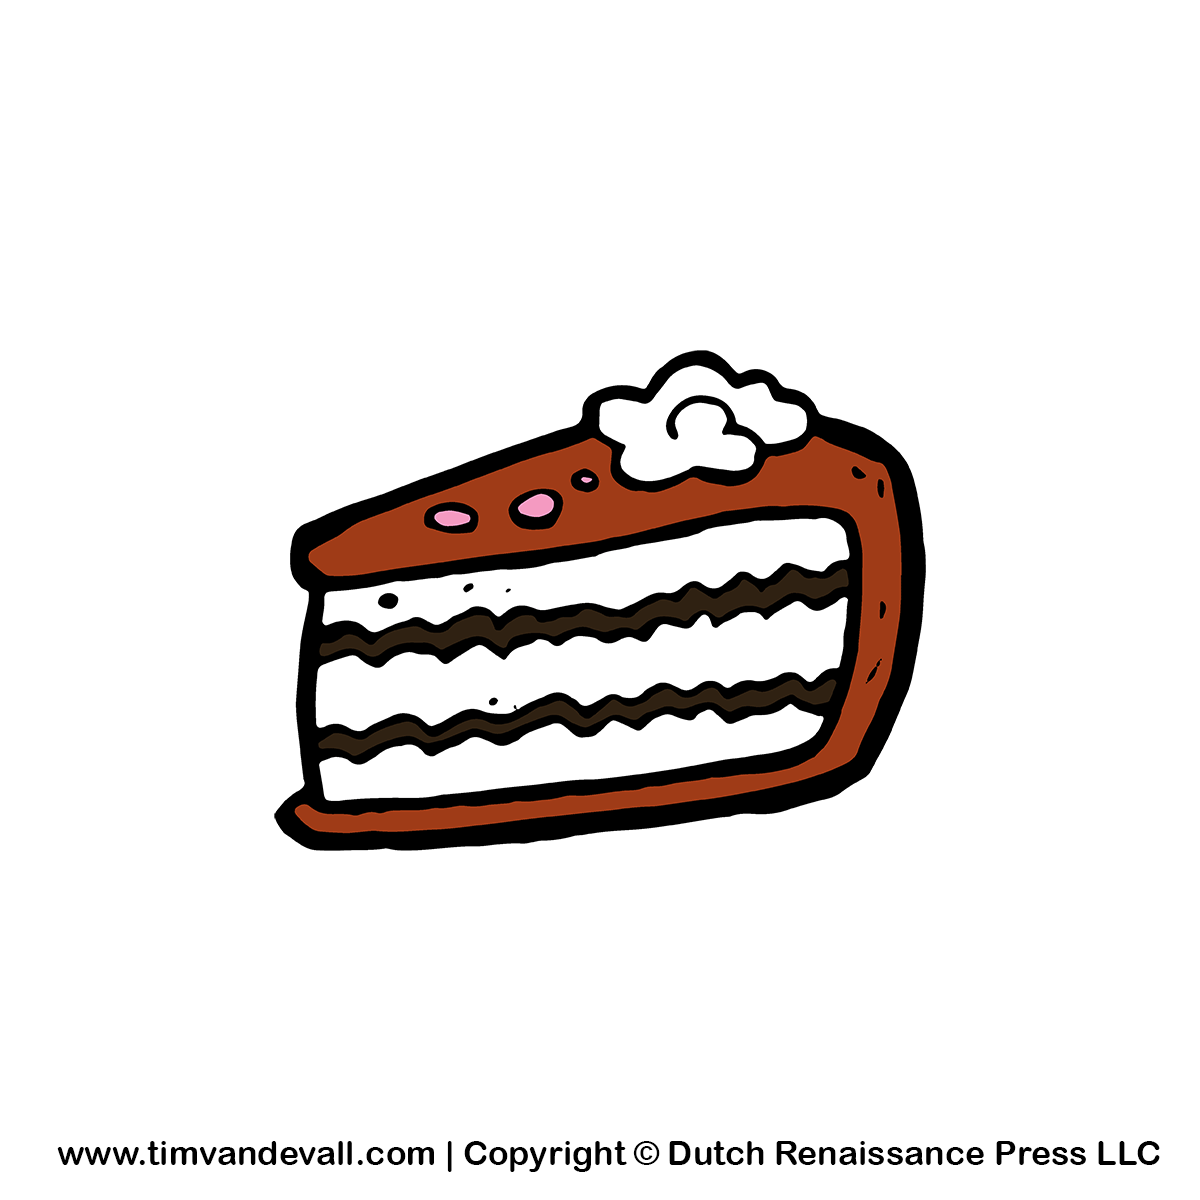 Free Cake Slice Clipart Cartoon Image For Birthday Parties And Events